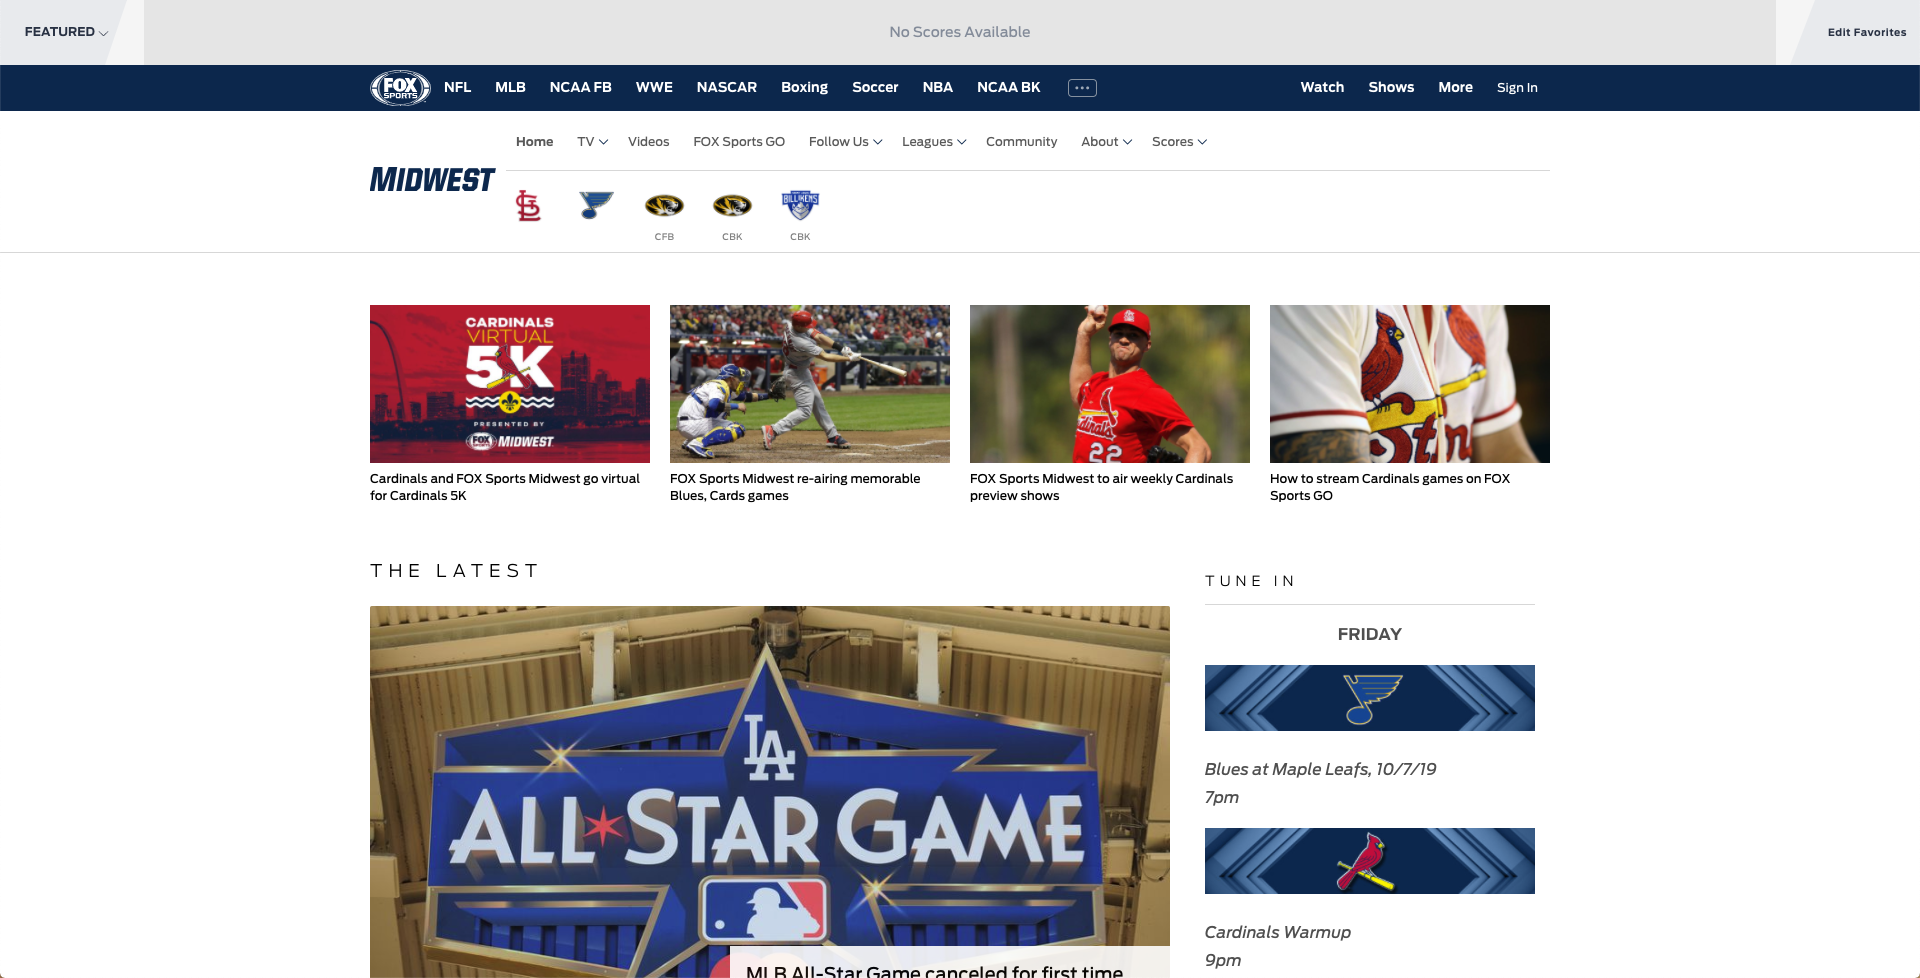 How To Watch Fox Sports Midwest Live Without Cable 2021 – Top Option